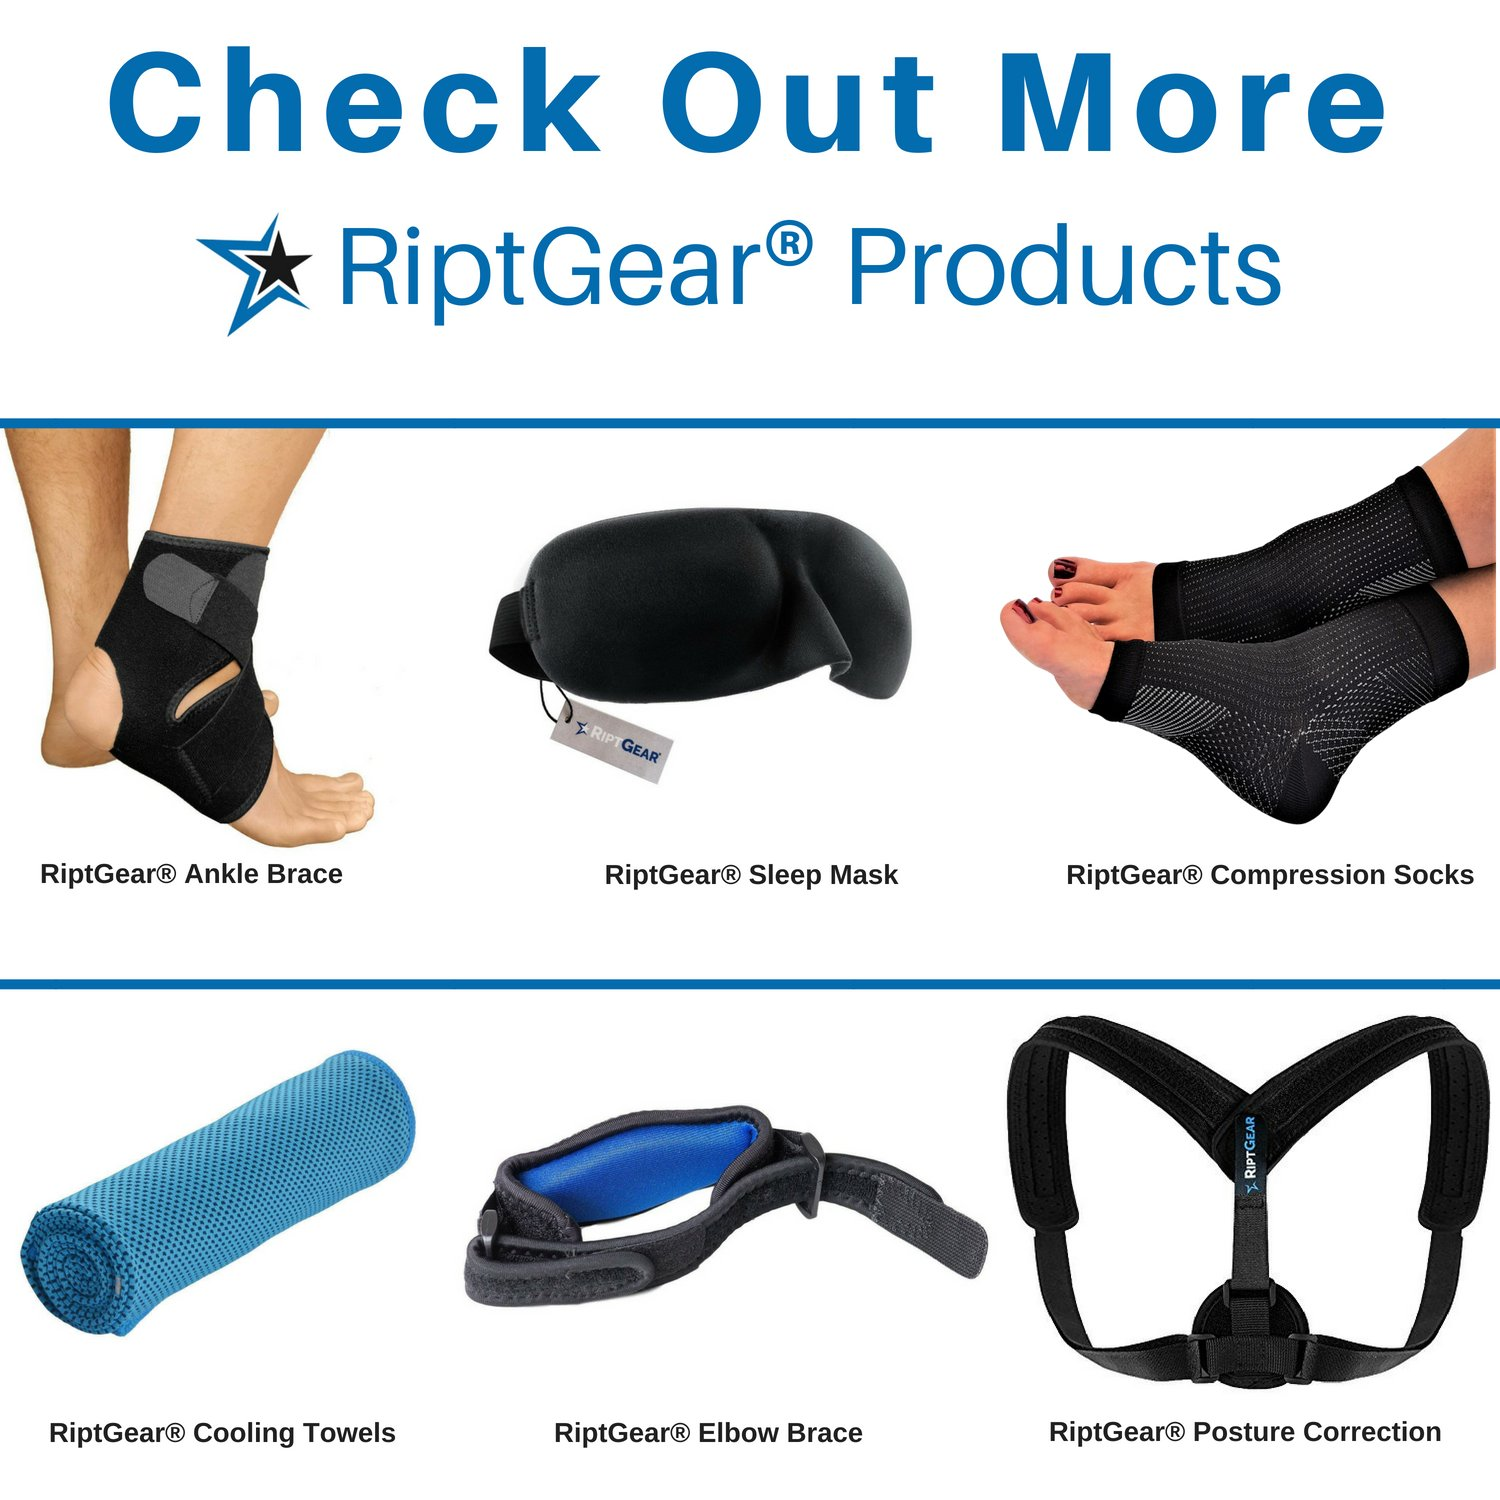 NEW-Knee-Compression-Sleeve-for-Men-and-Women-by-RiptGear-Knee-Brace-Support thumbnail 15